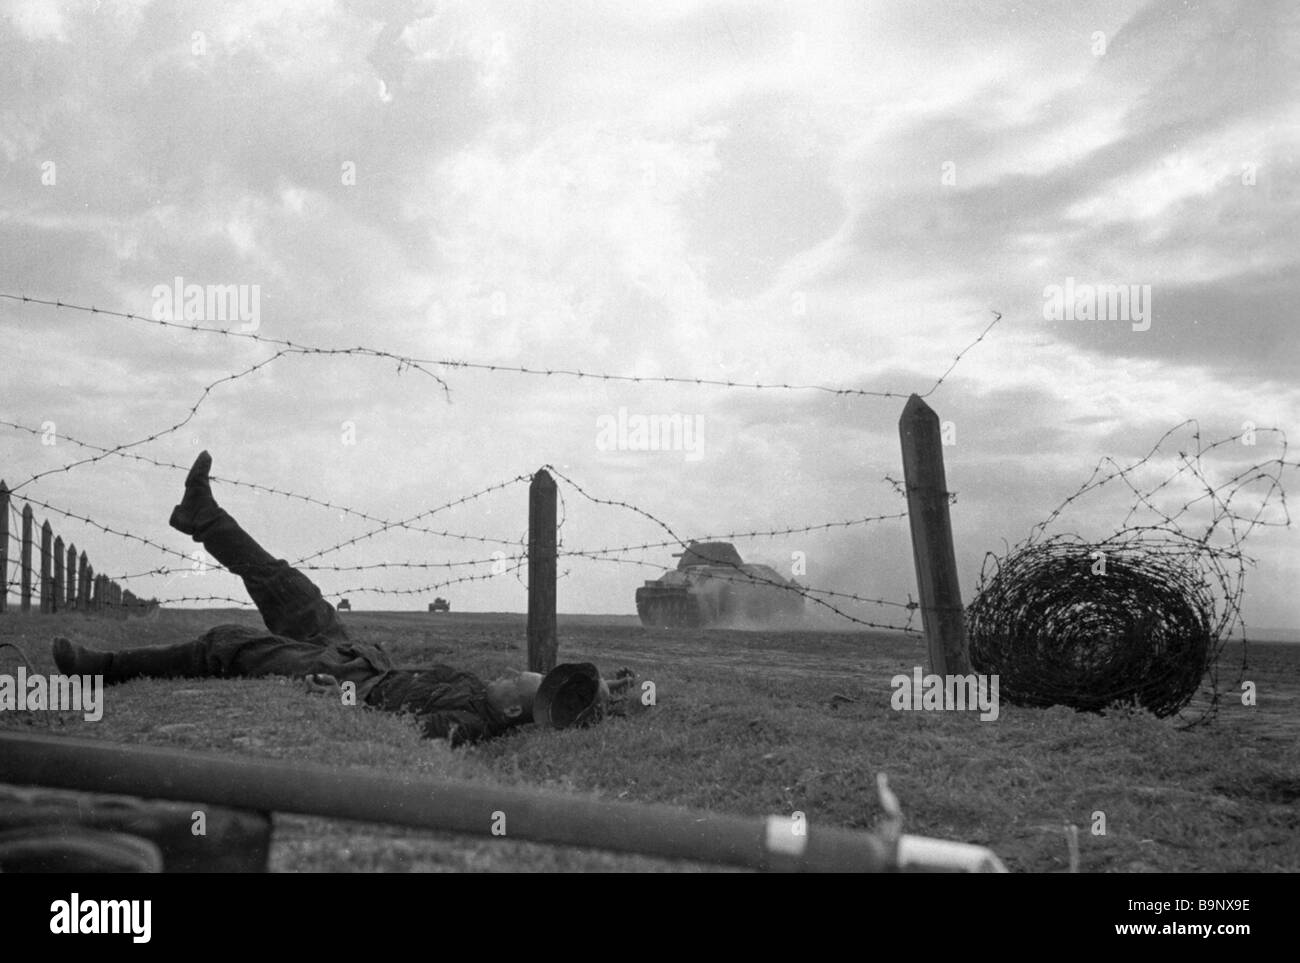 Barbed Wire Soldier Stock Photos & Barbed Wire Soldier Stock Images ...